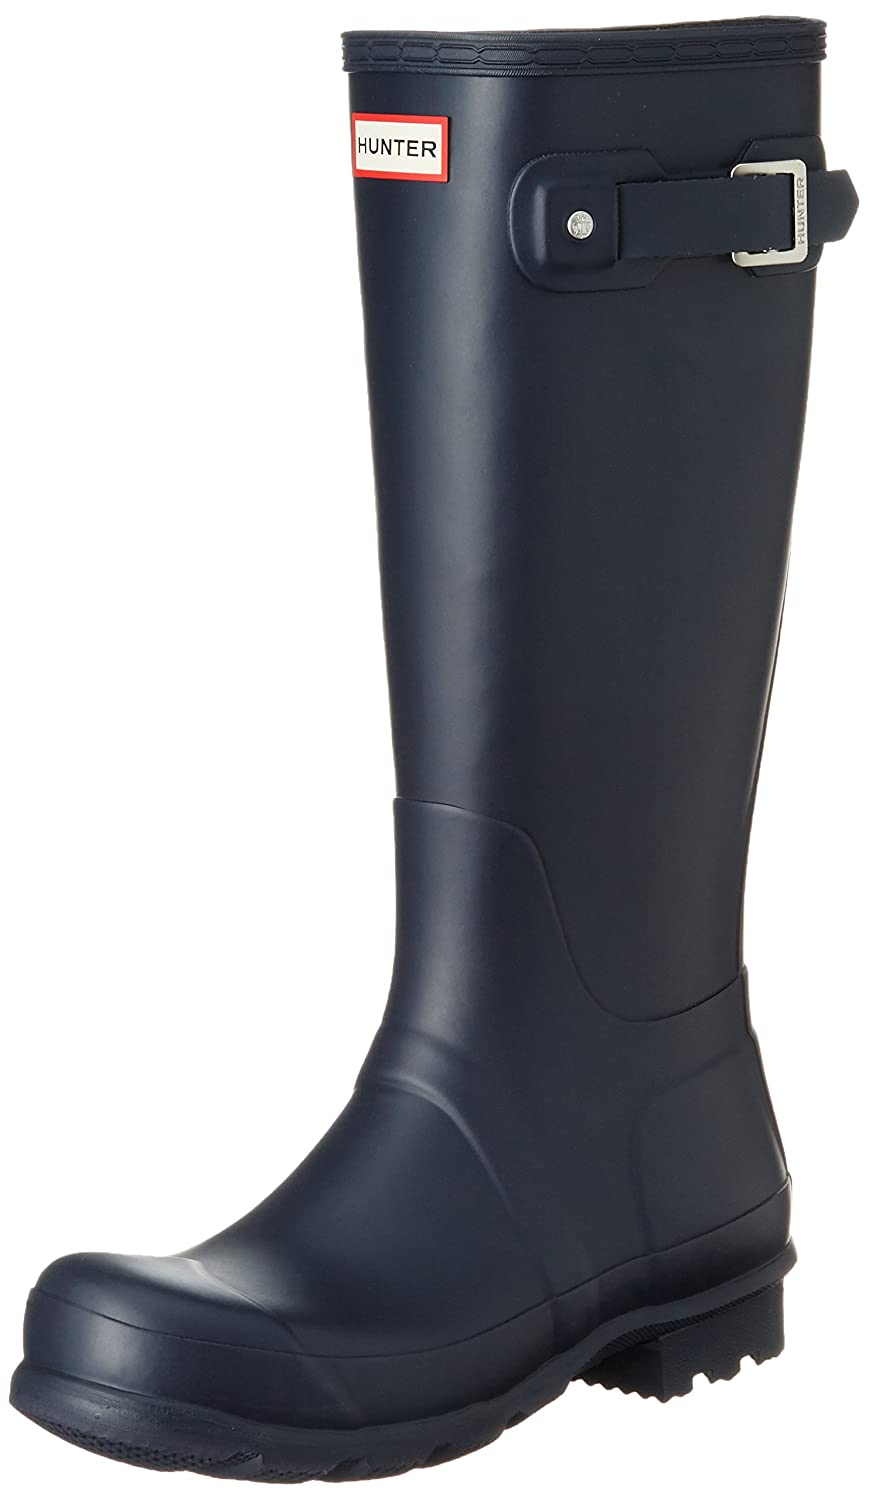 fefc3183 Amazon.com | Hunter Women's Original Tall Rain Boot | Rain Footwear